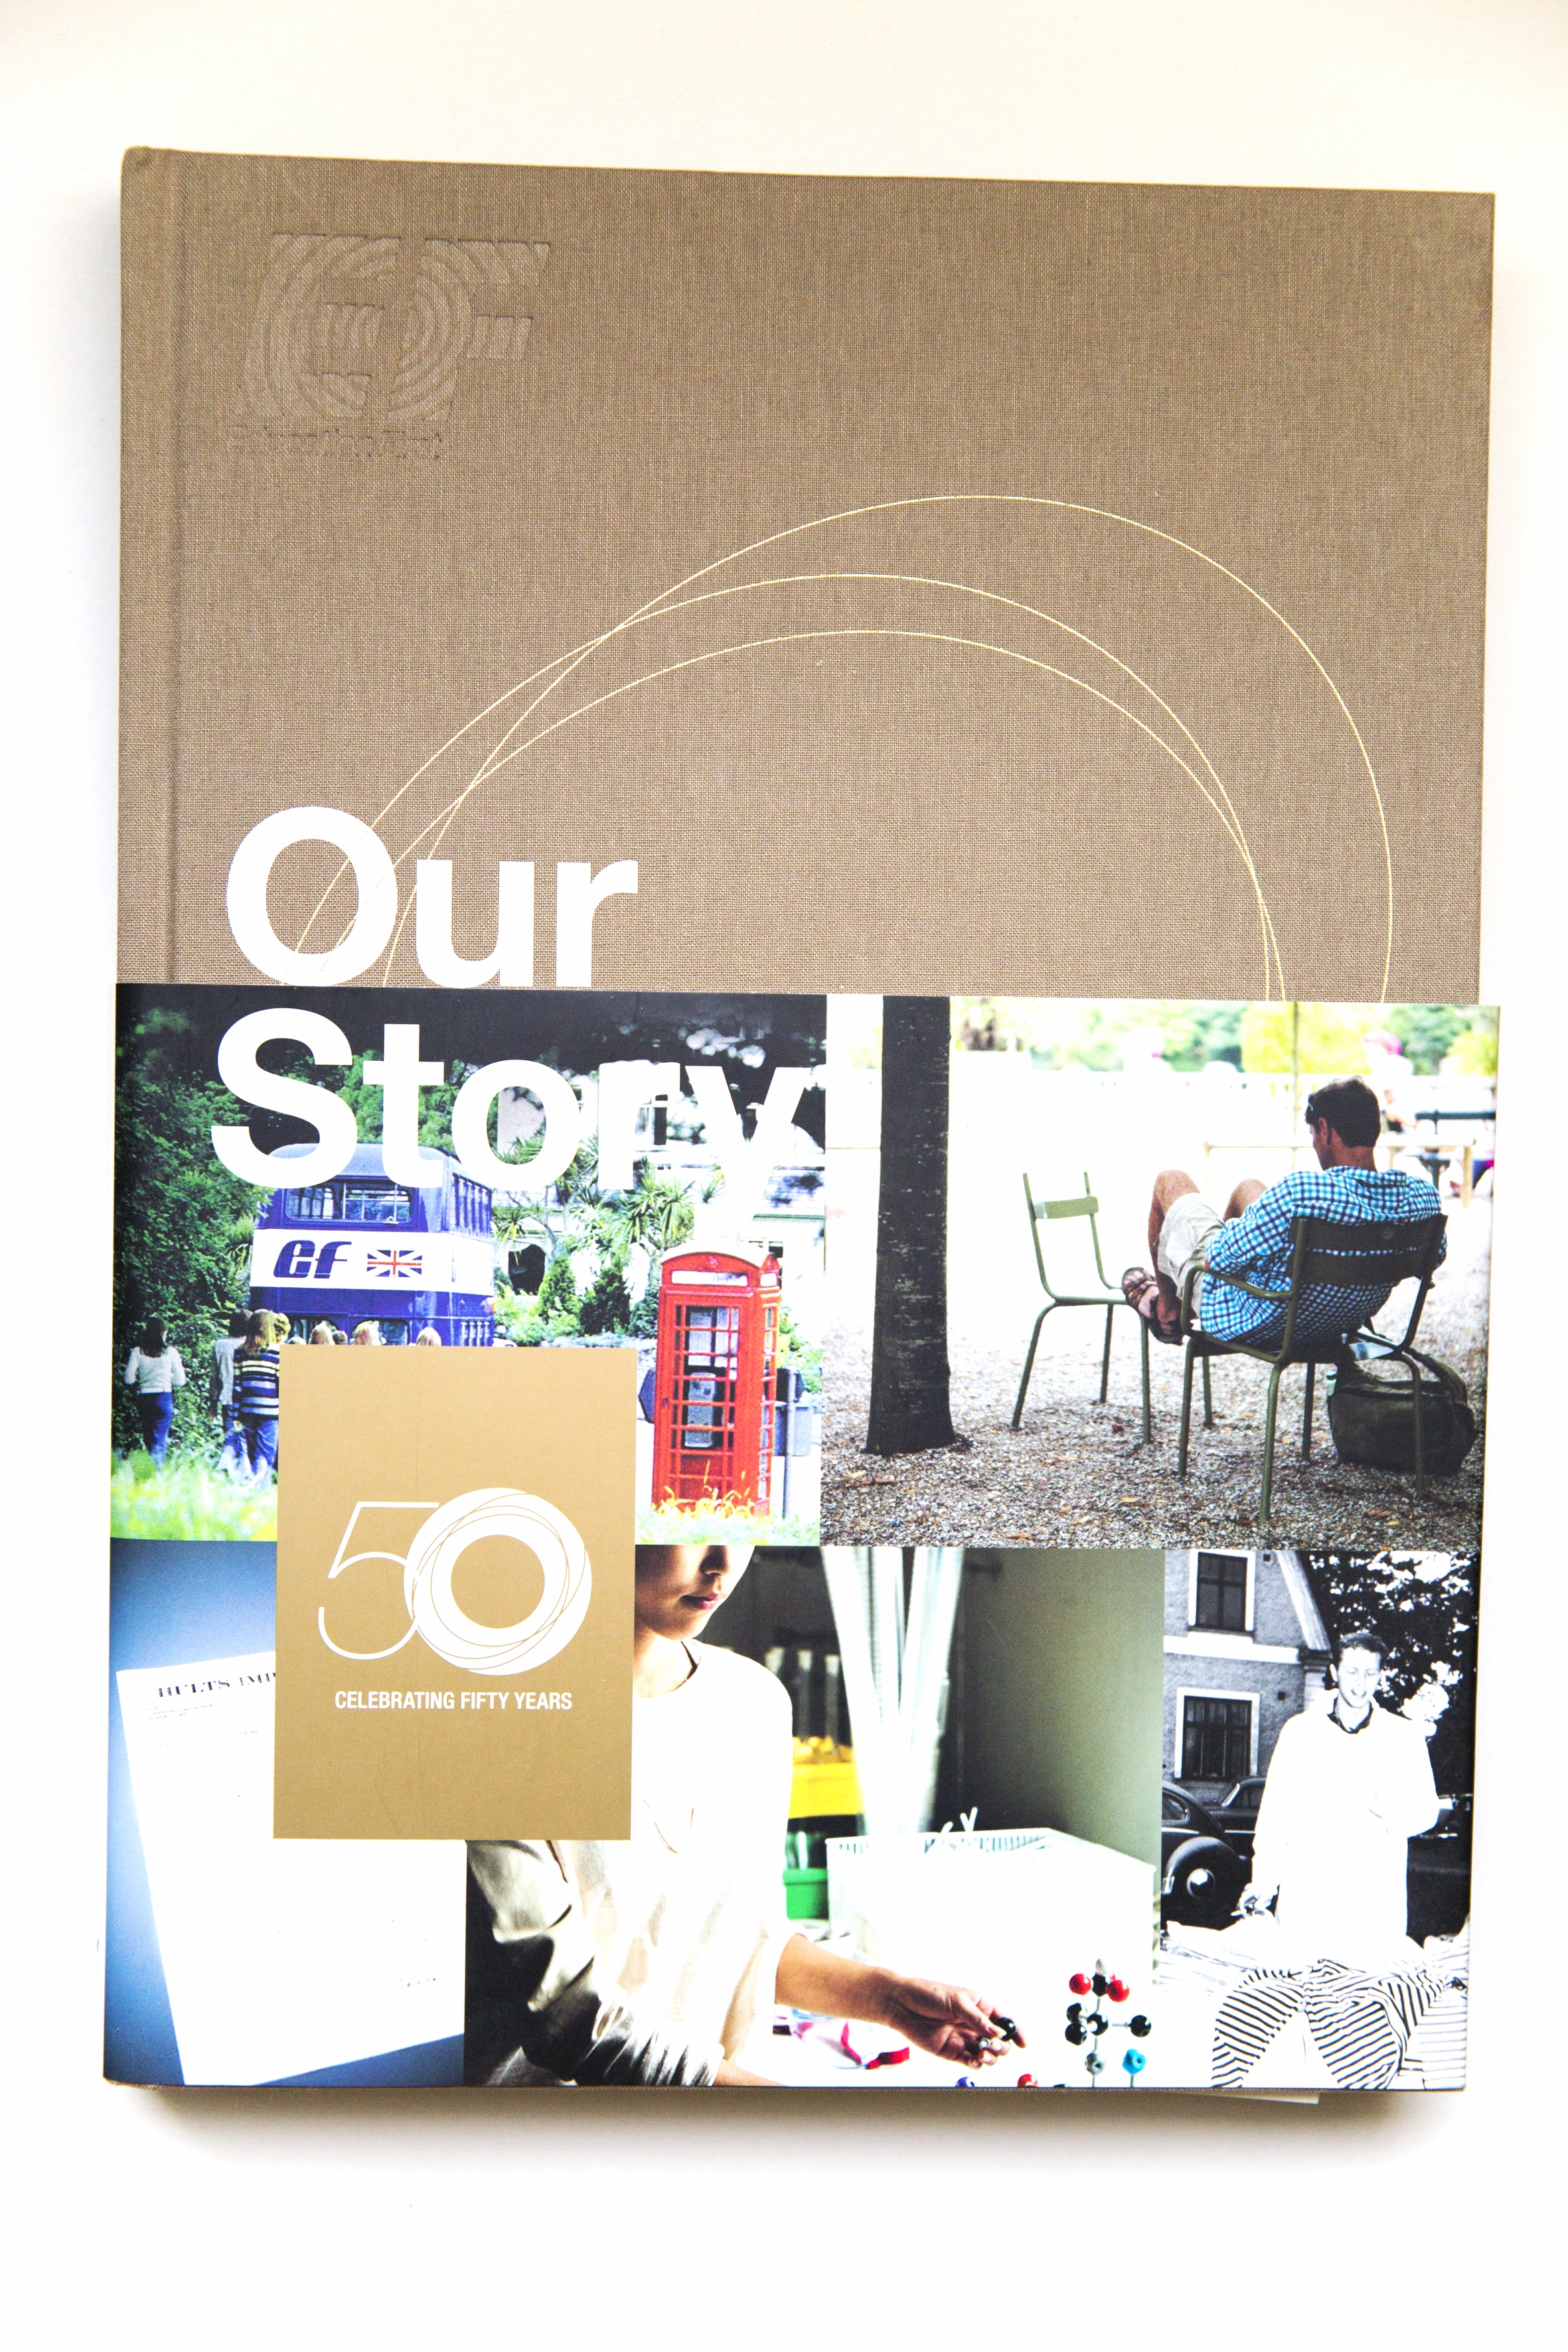 Our Story, the story about EF 50 years